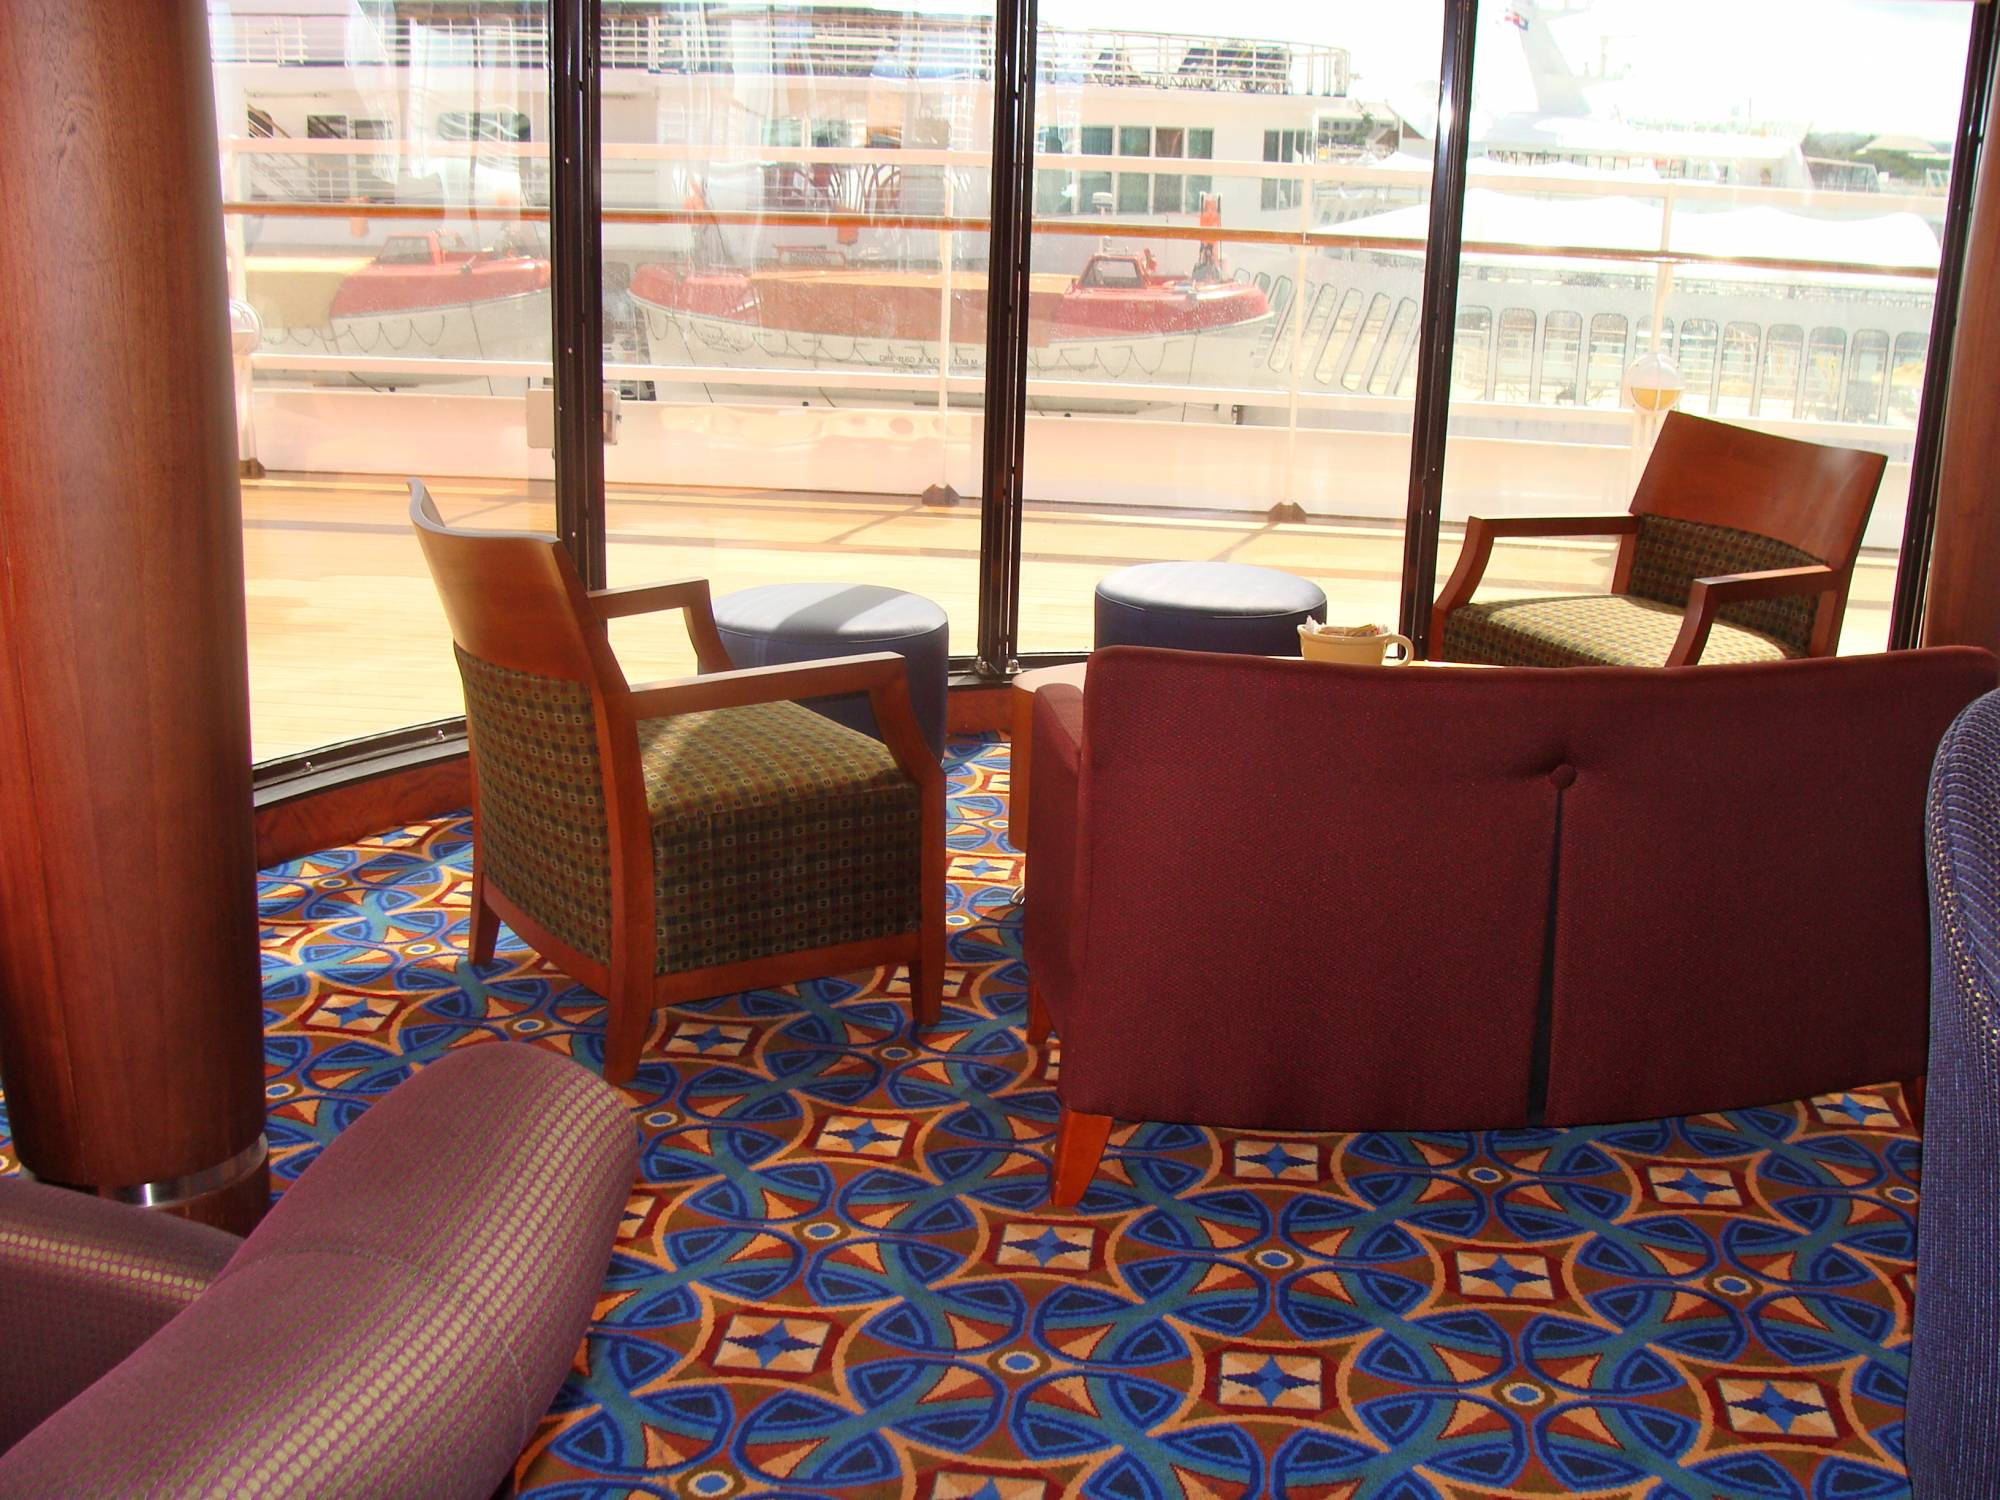 Outlook Cafe/Lounge Starboard Side